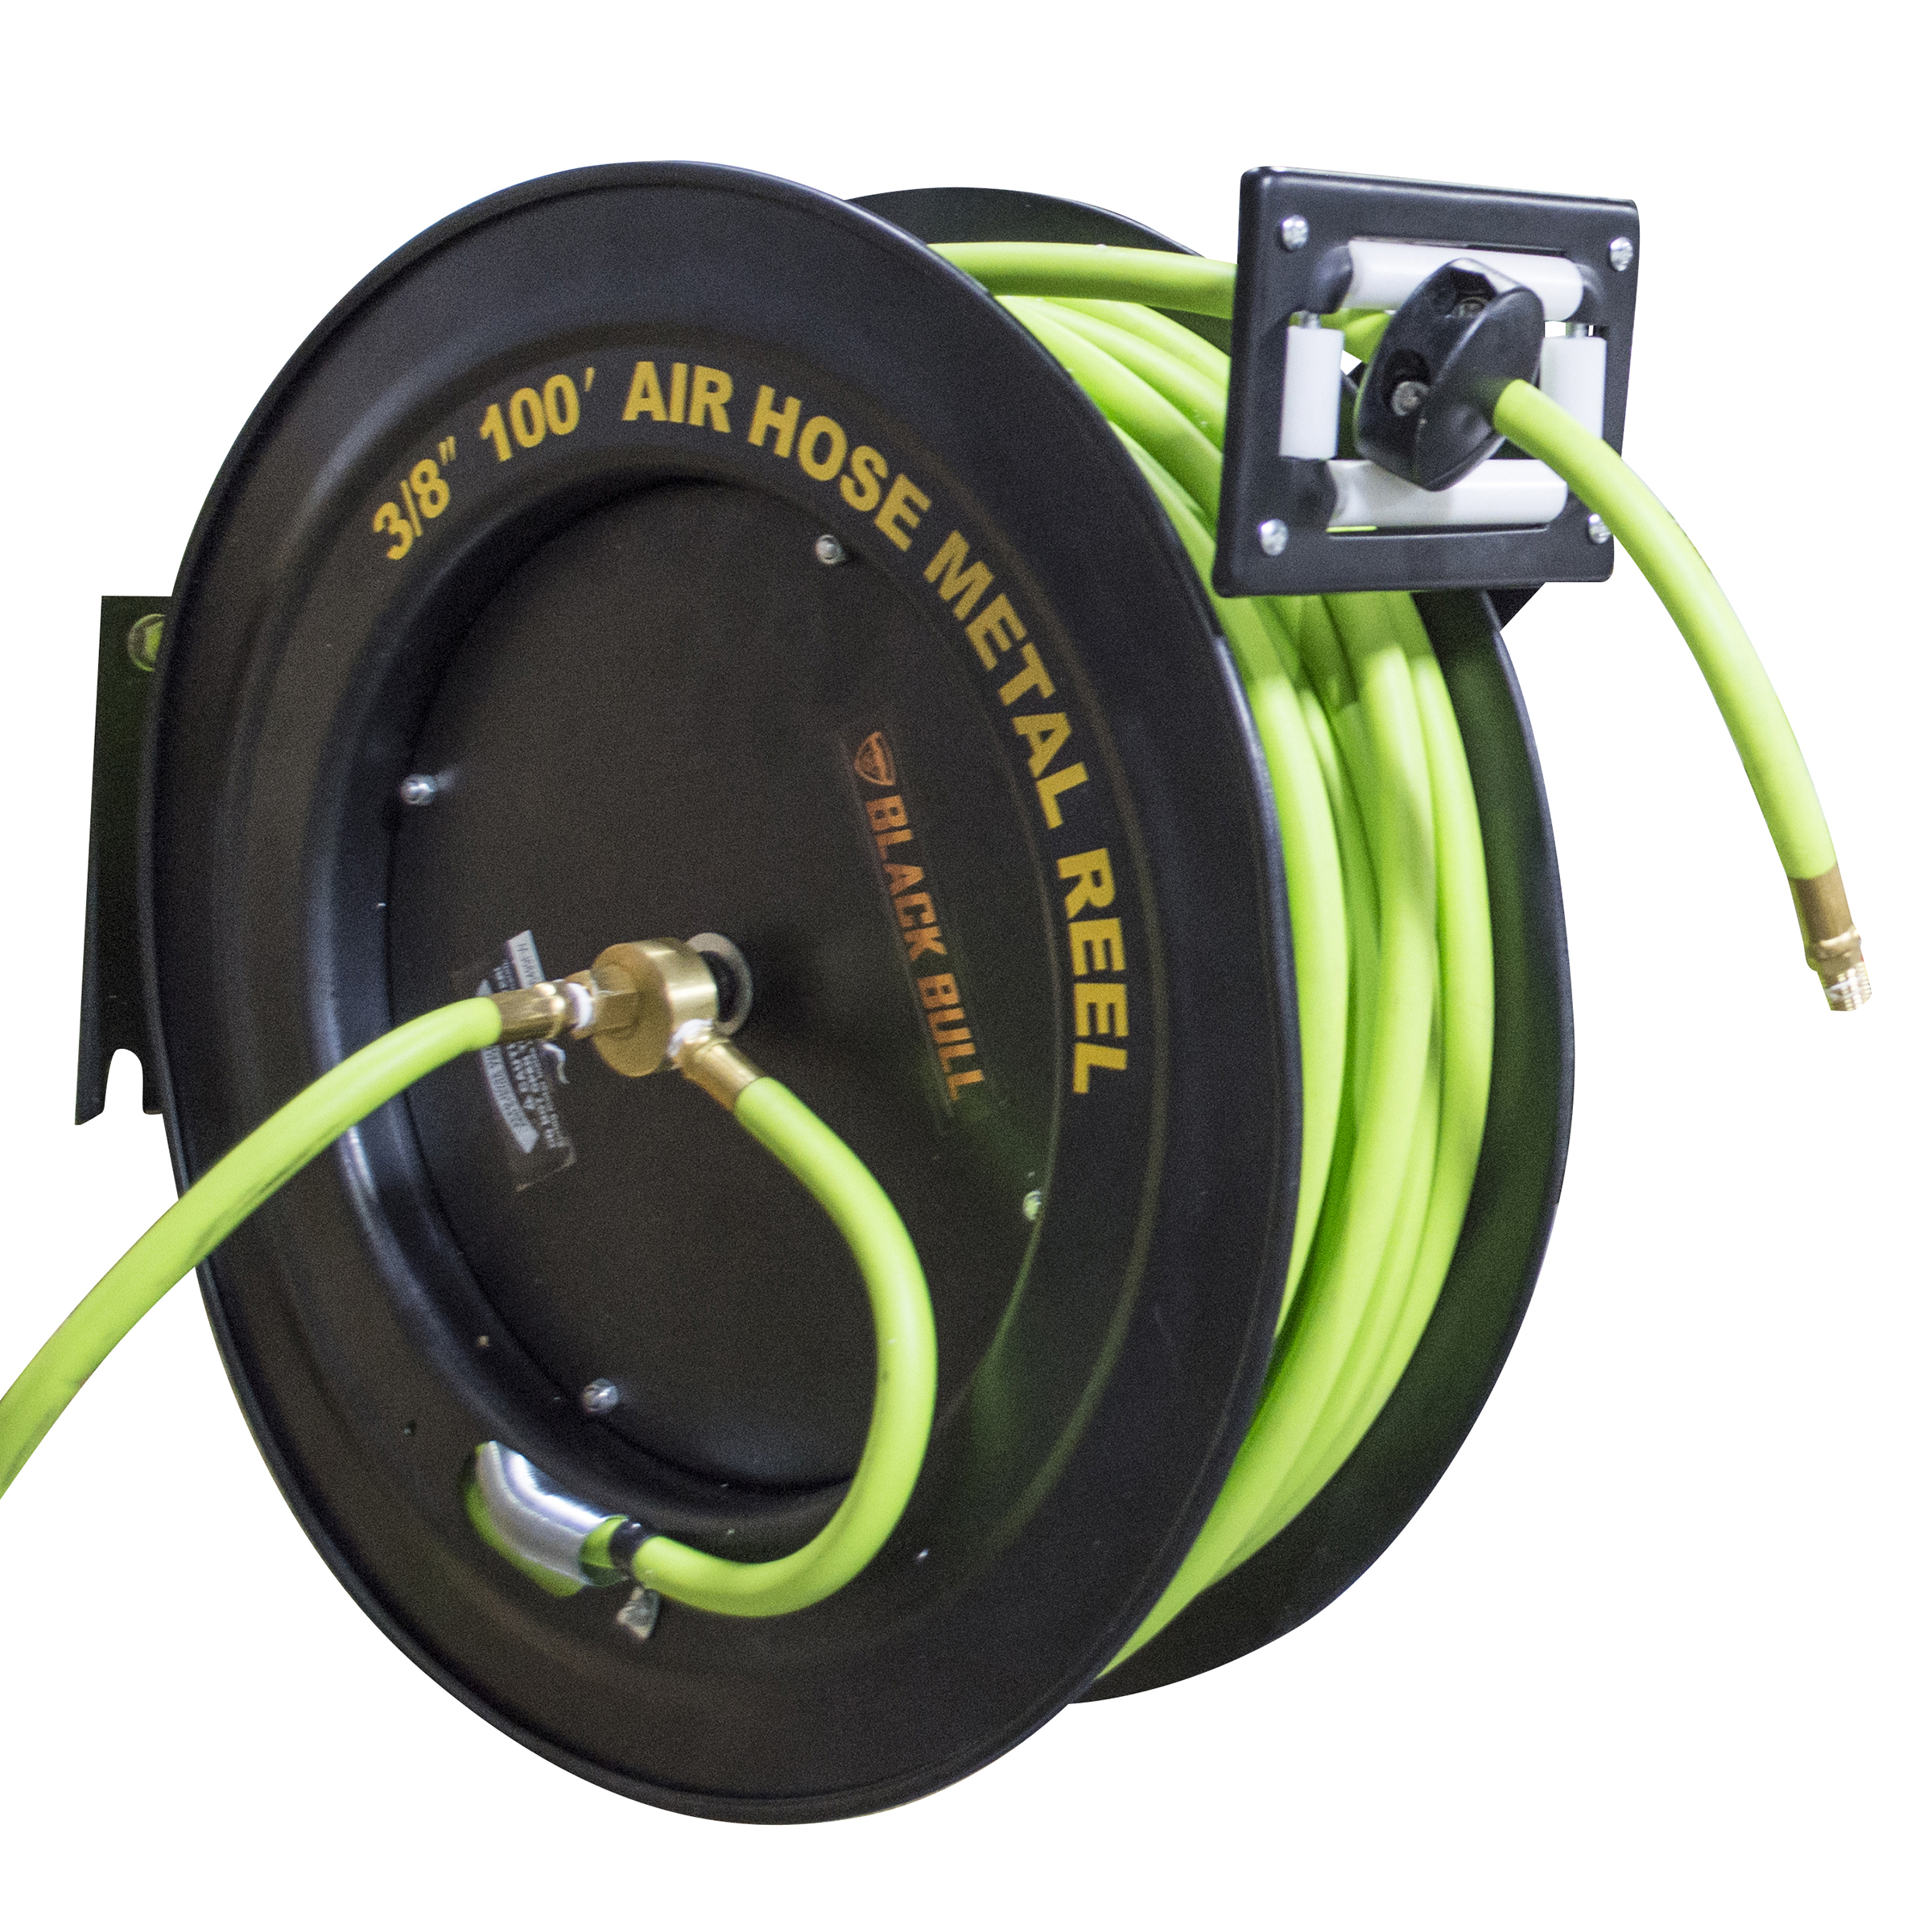 Black Bull 100 Foot Retractable Air Hose Reel with Auto Rewind